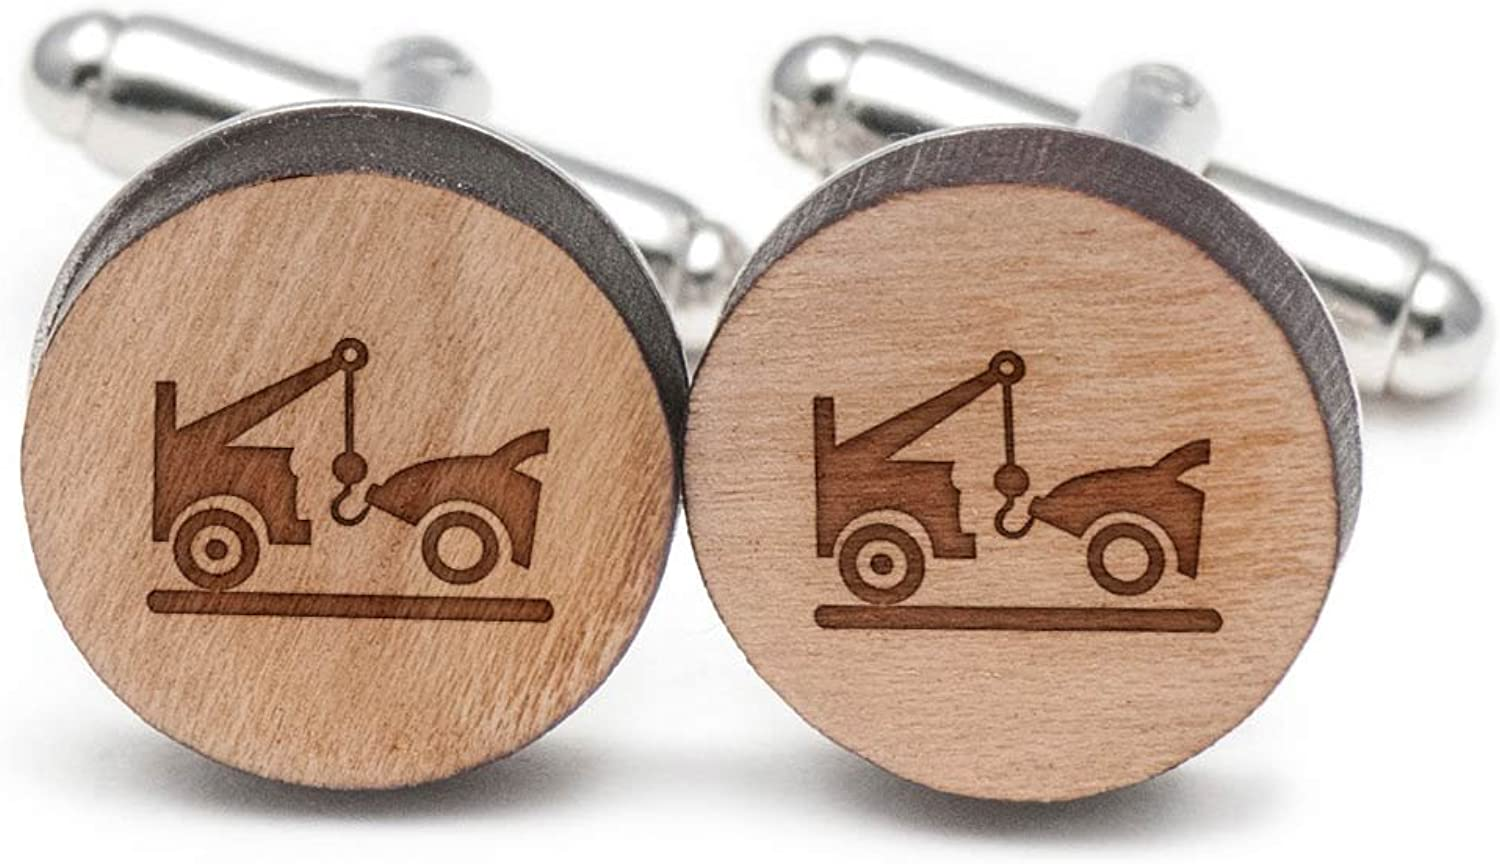 Cherry Wood Tie Bar Engraved in The USA Wooden Accessories Company Wooden Tie Clips with Laser Engraved Trike Design